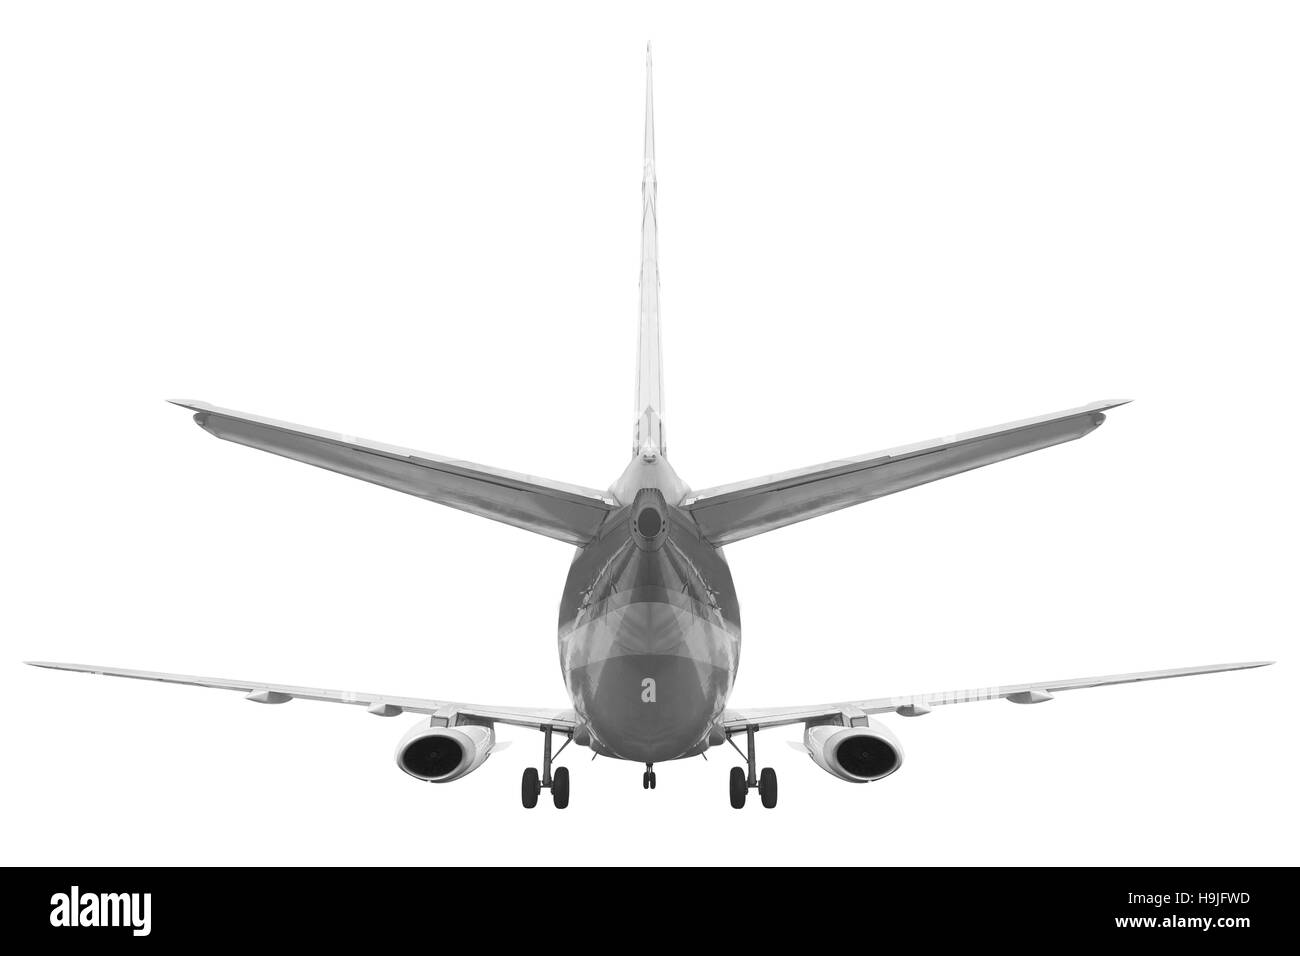 Rear view Passenger aircraft isolated on white background with clipping path - Stock Image